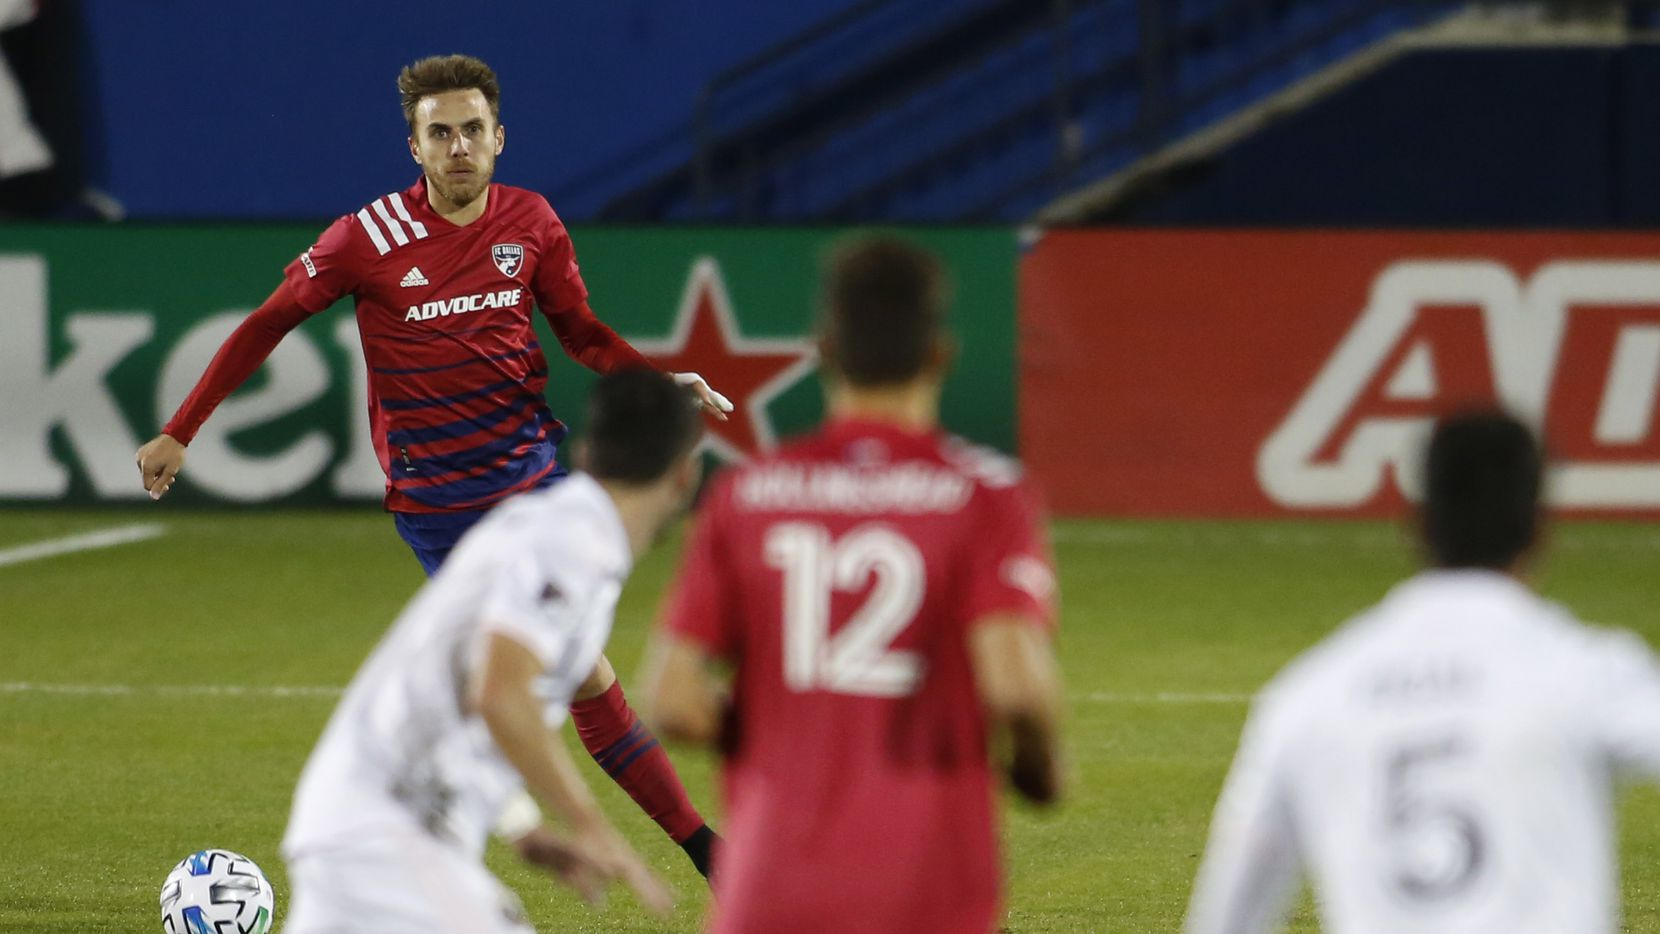 FC Dallas defender Bressan (4) shows fine focus as he surveys the Inter Miami defense as he advances the ball during a first half offensive drive.The two teams played their Major League Soccer match at Toyota Stadium in Frisco on October 28, 2020.